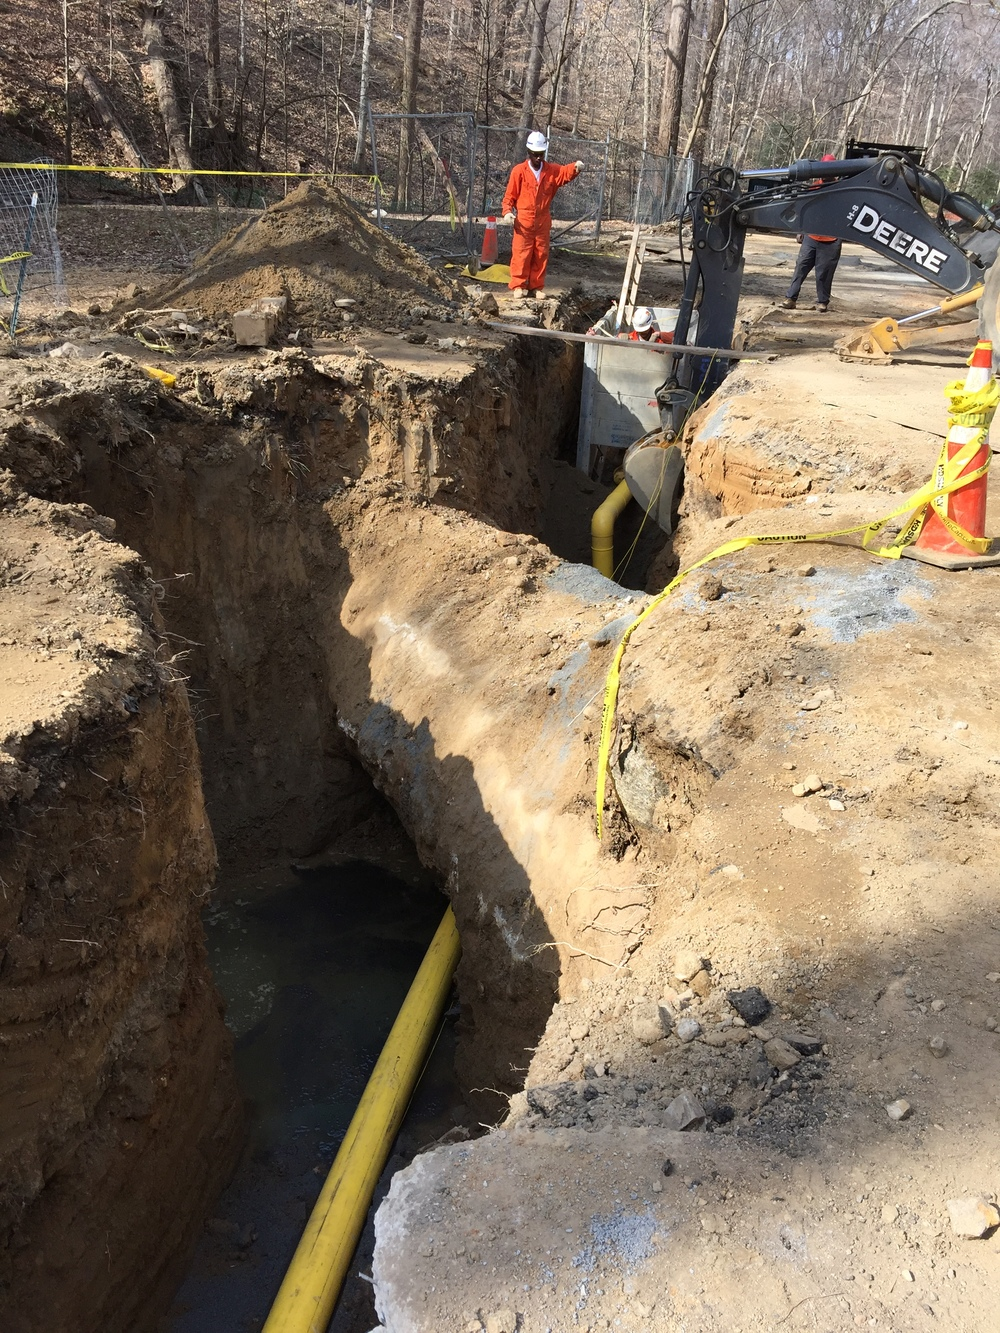 Threading a new gas line between existing storm water pipes